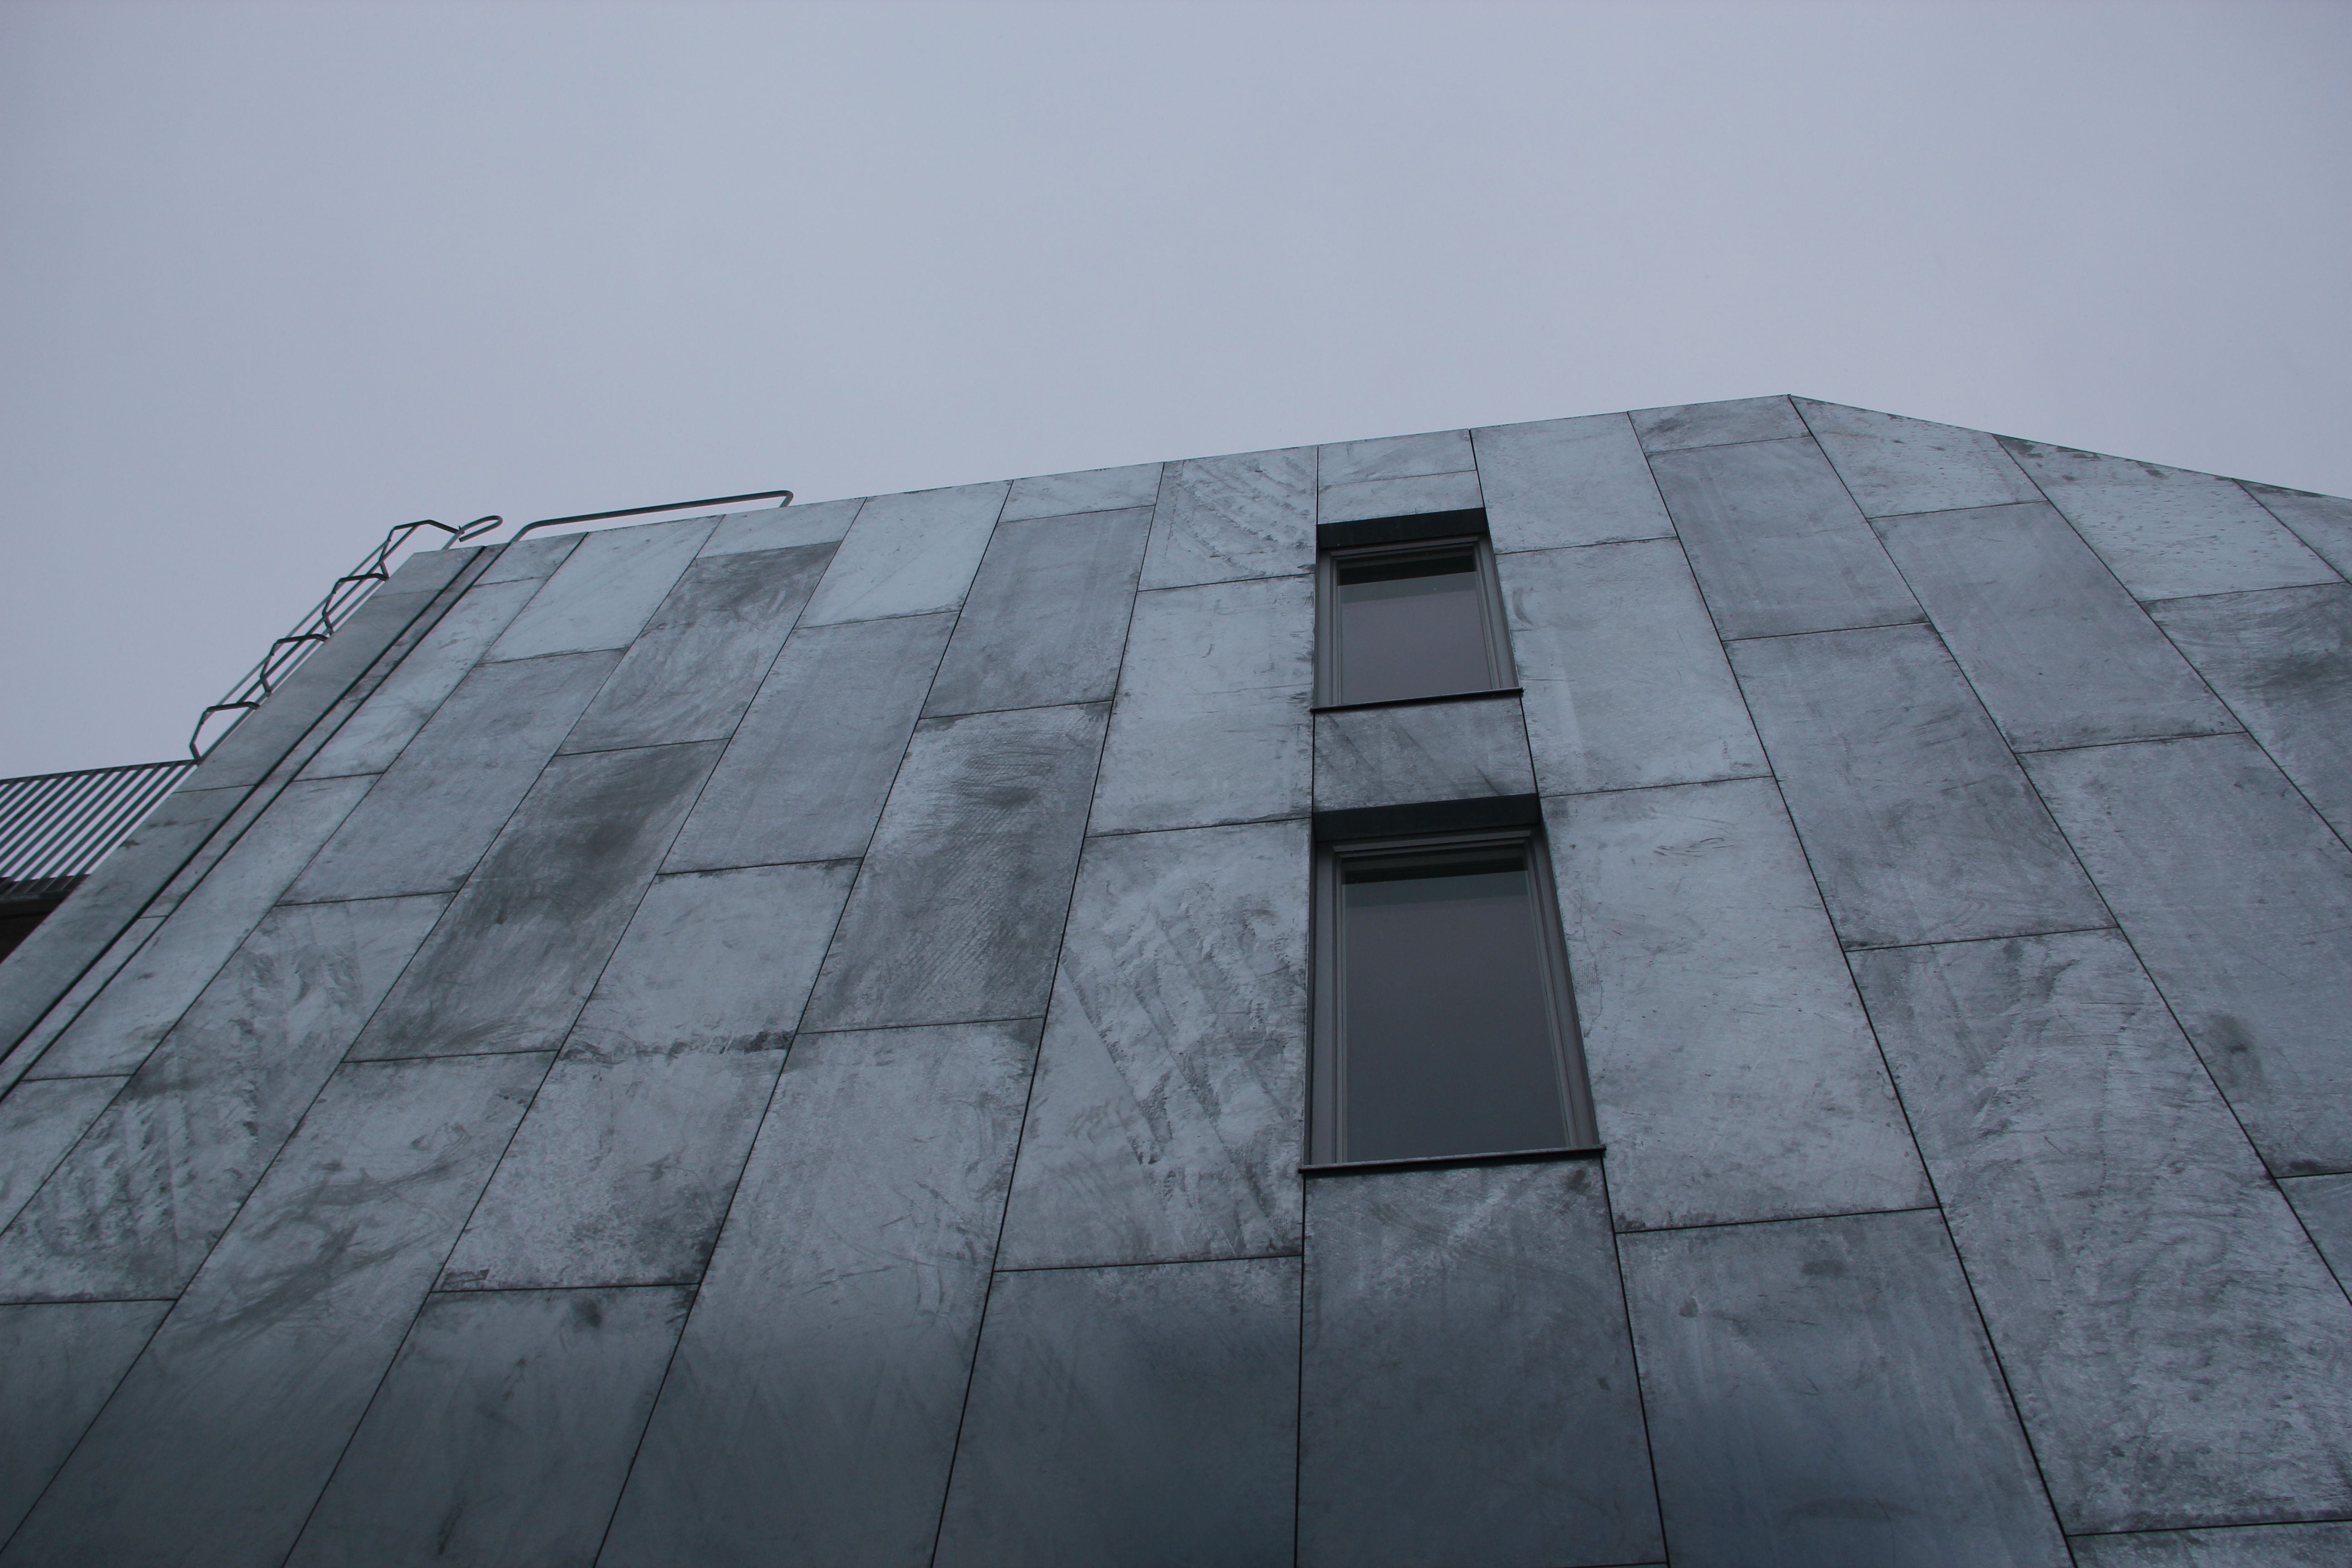 Hot Dip Galvanized Steel Cladding Tappen Project Facades